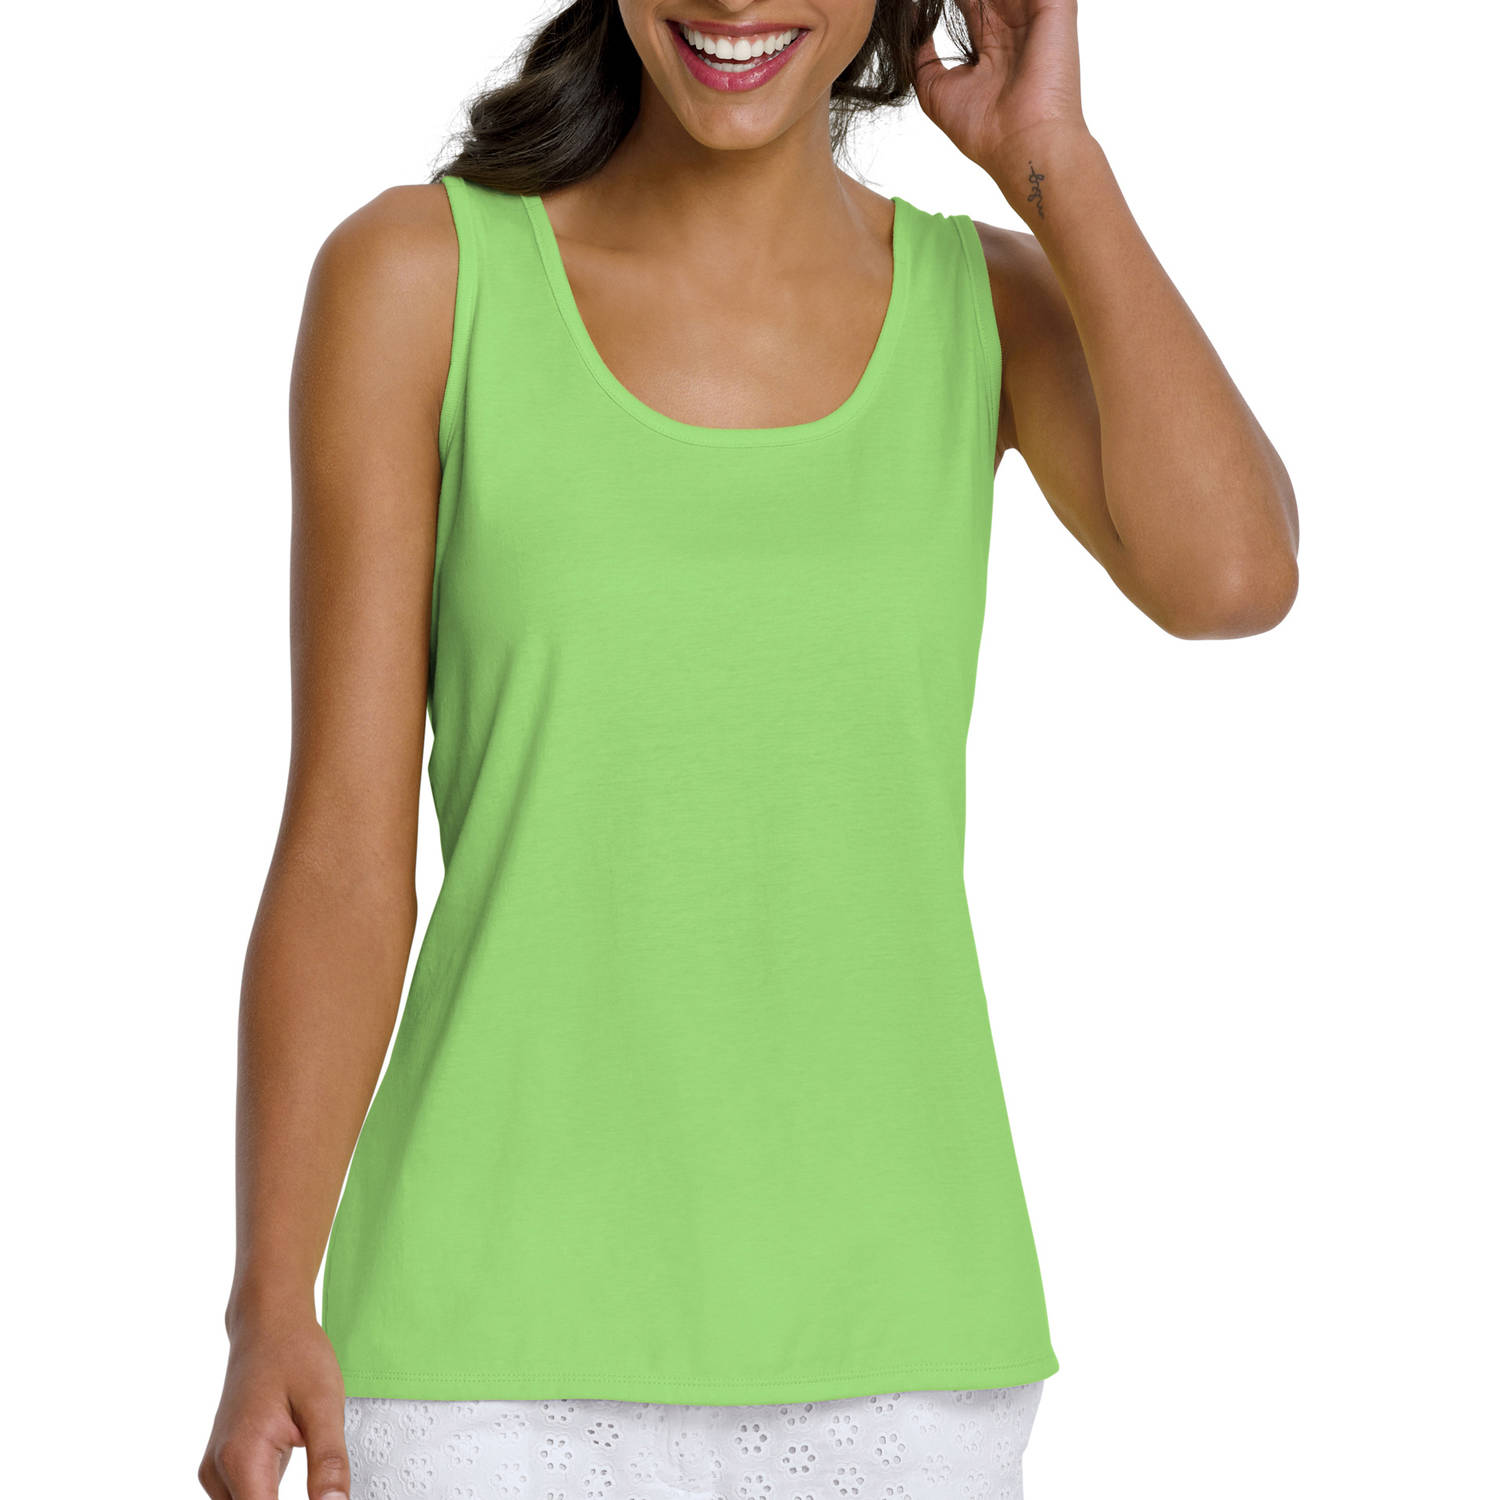 Hanes Women's Basic Essential Tank